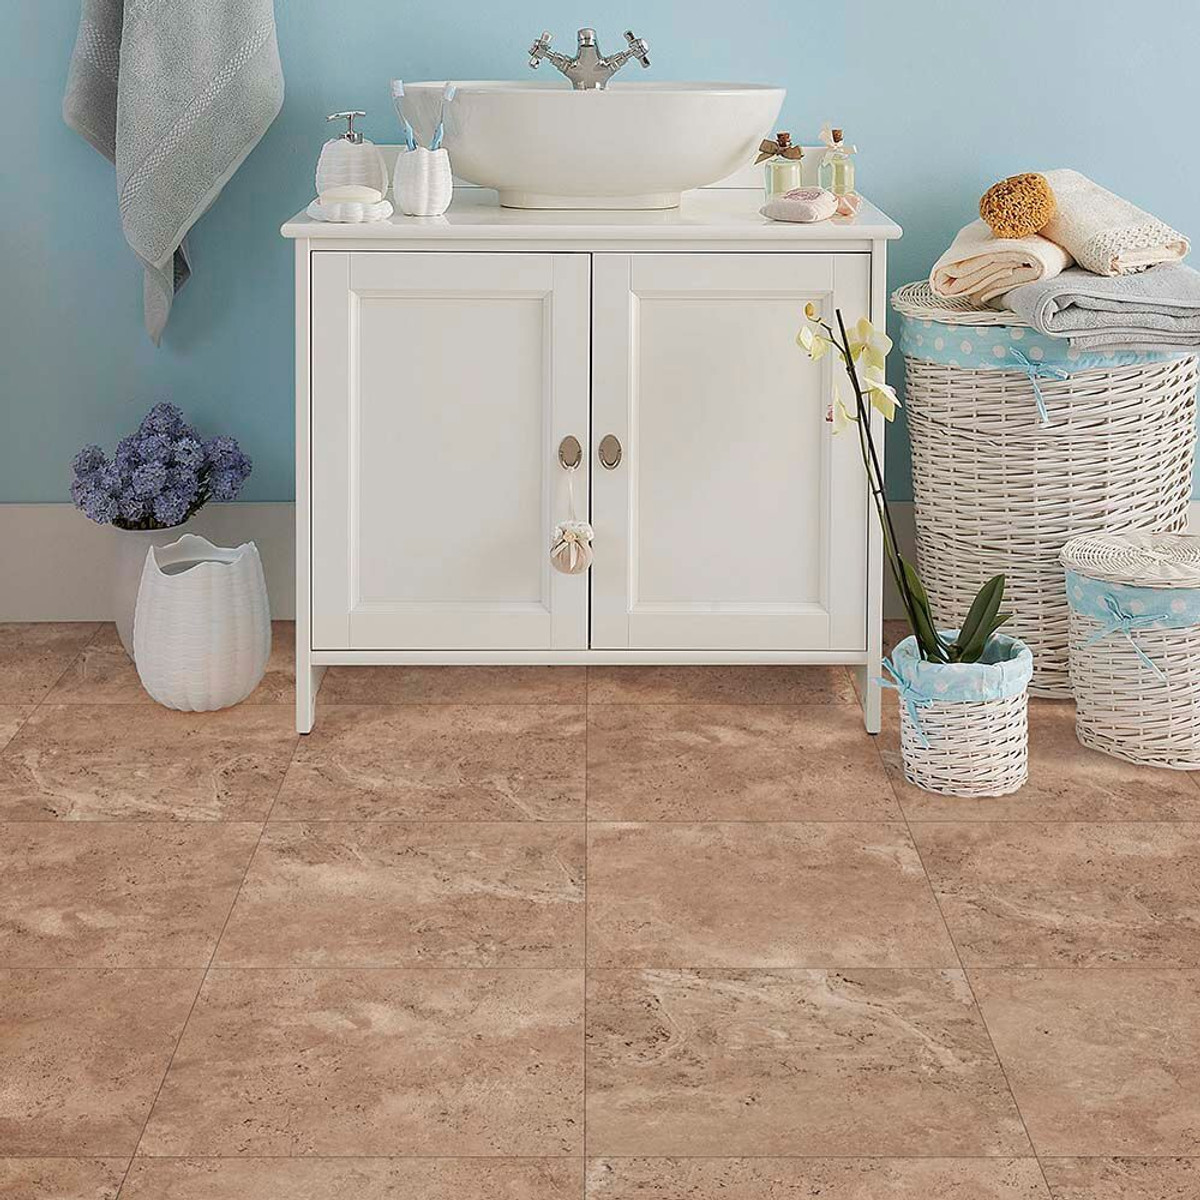 Perfection floor tile natural stone travertine narvana elite perfection floor tile narvana used in a bathroom setting dailygadgetfo Images